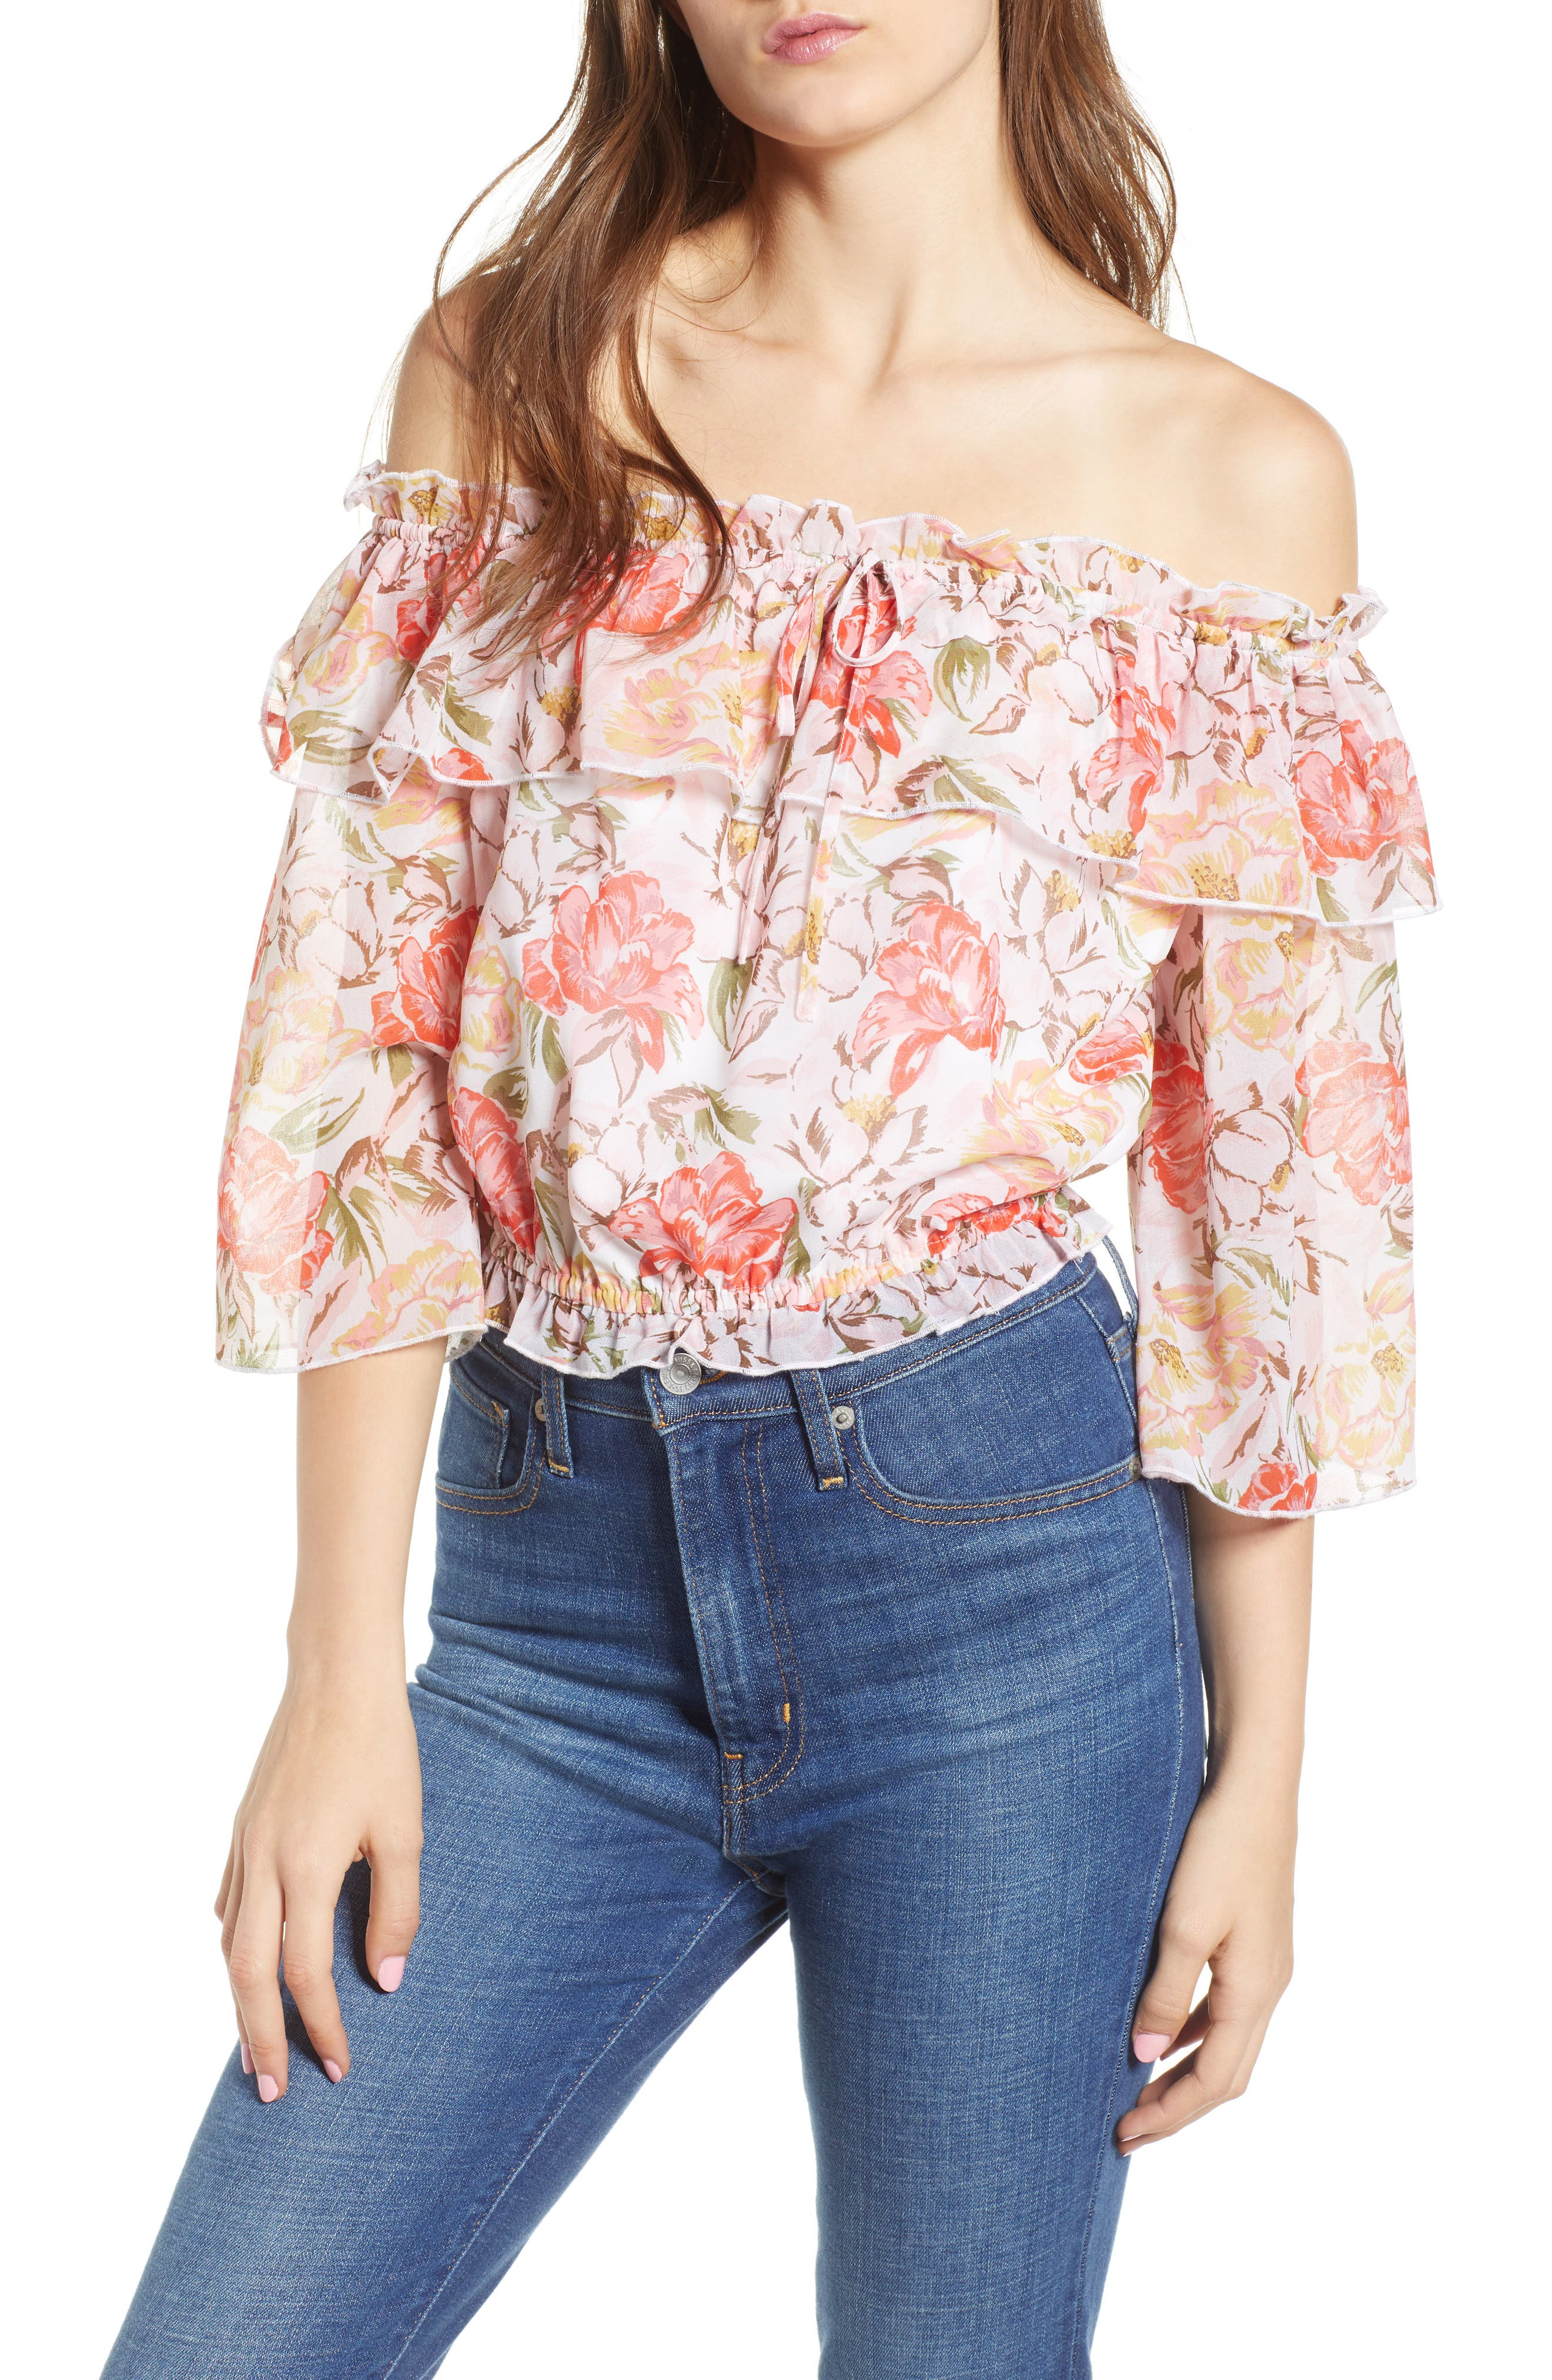 Cosenza Off the Shoulder Crop Top,                         Main,                         color, Ivory Floral